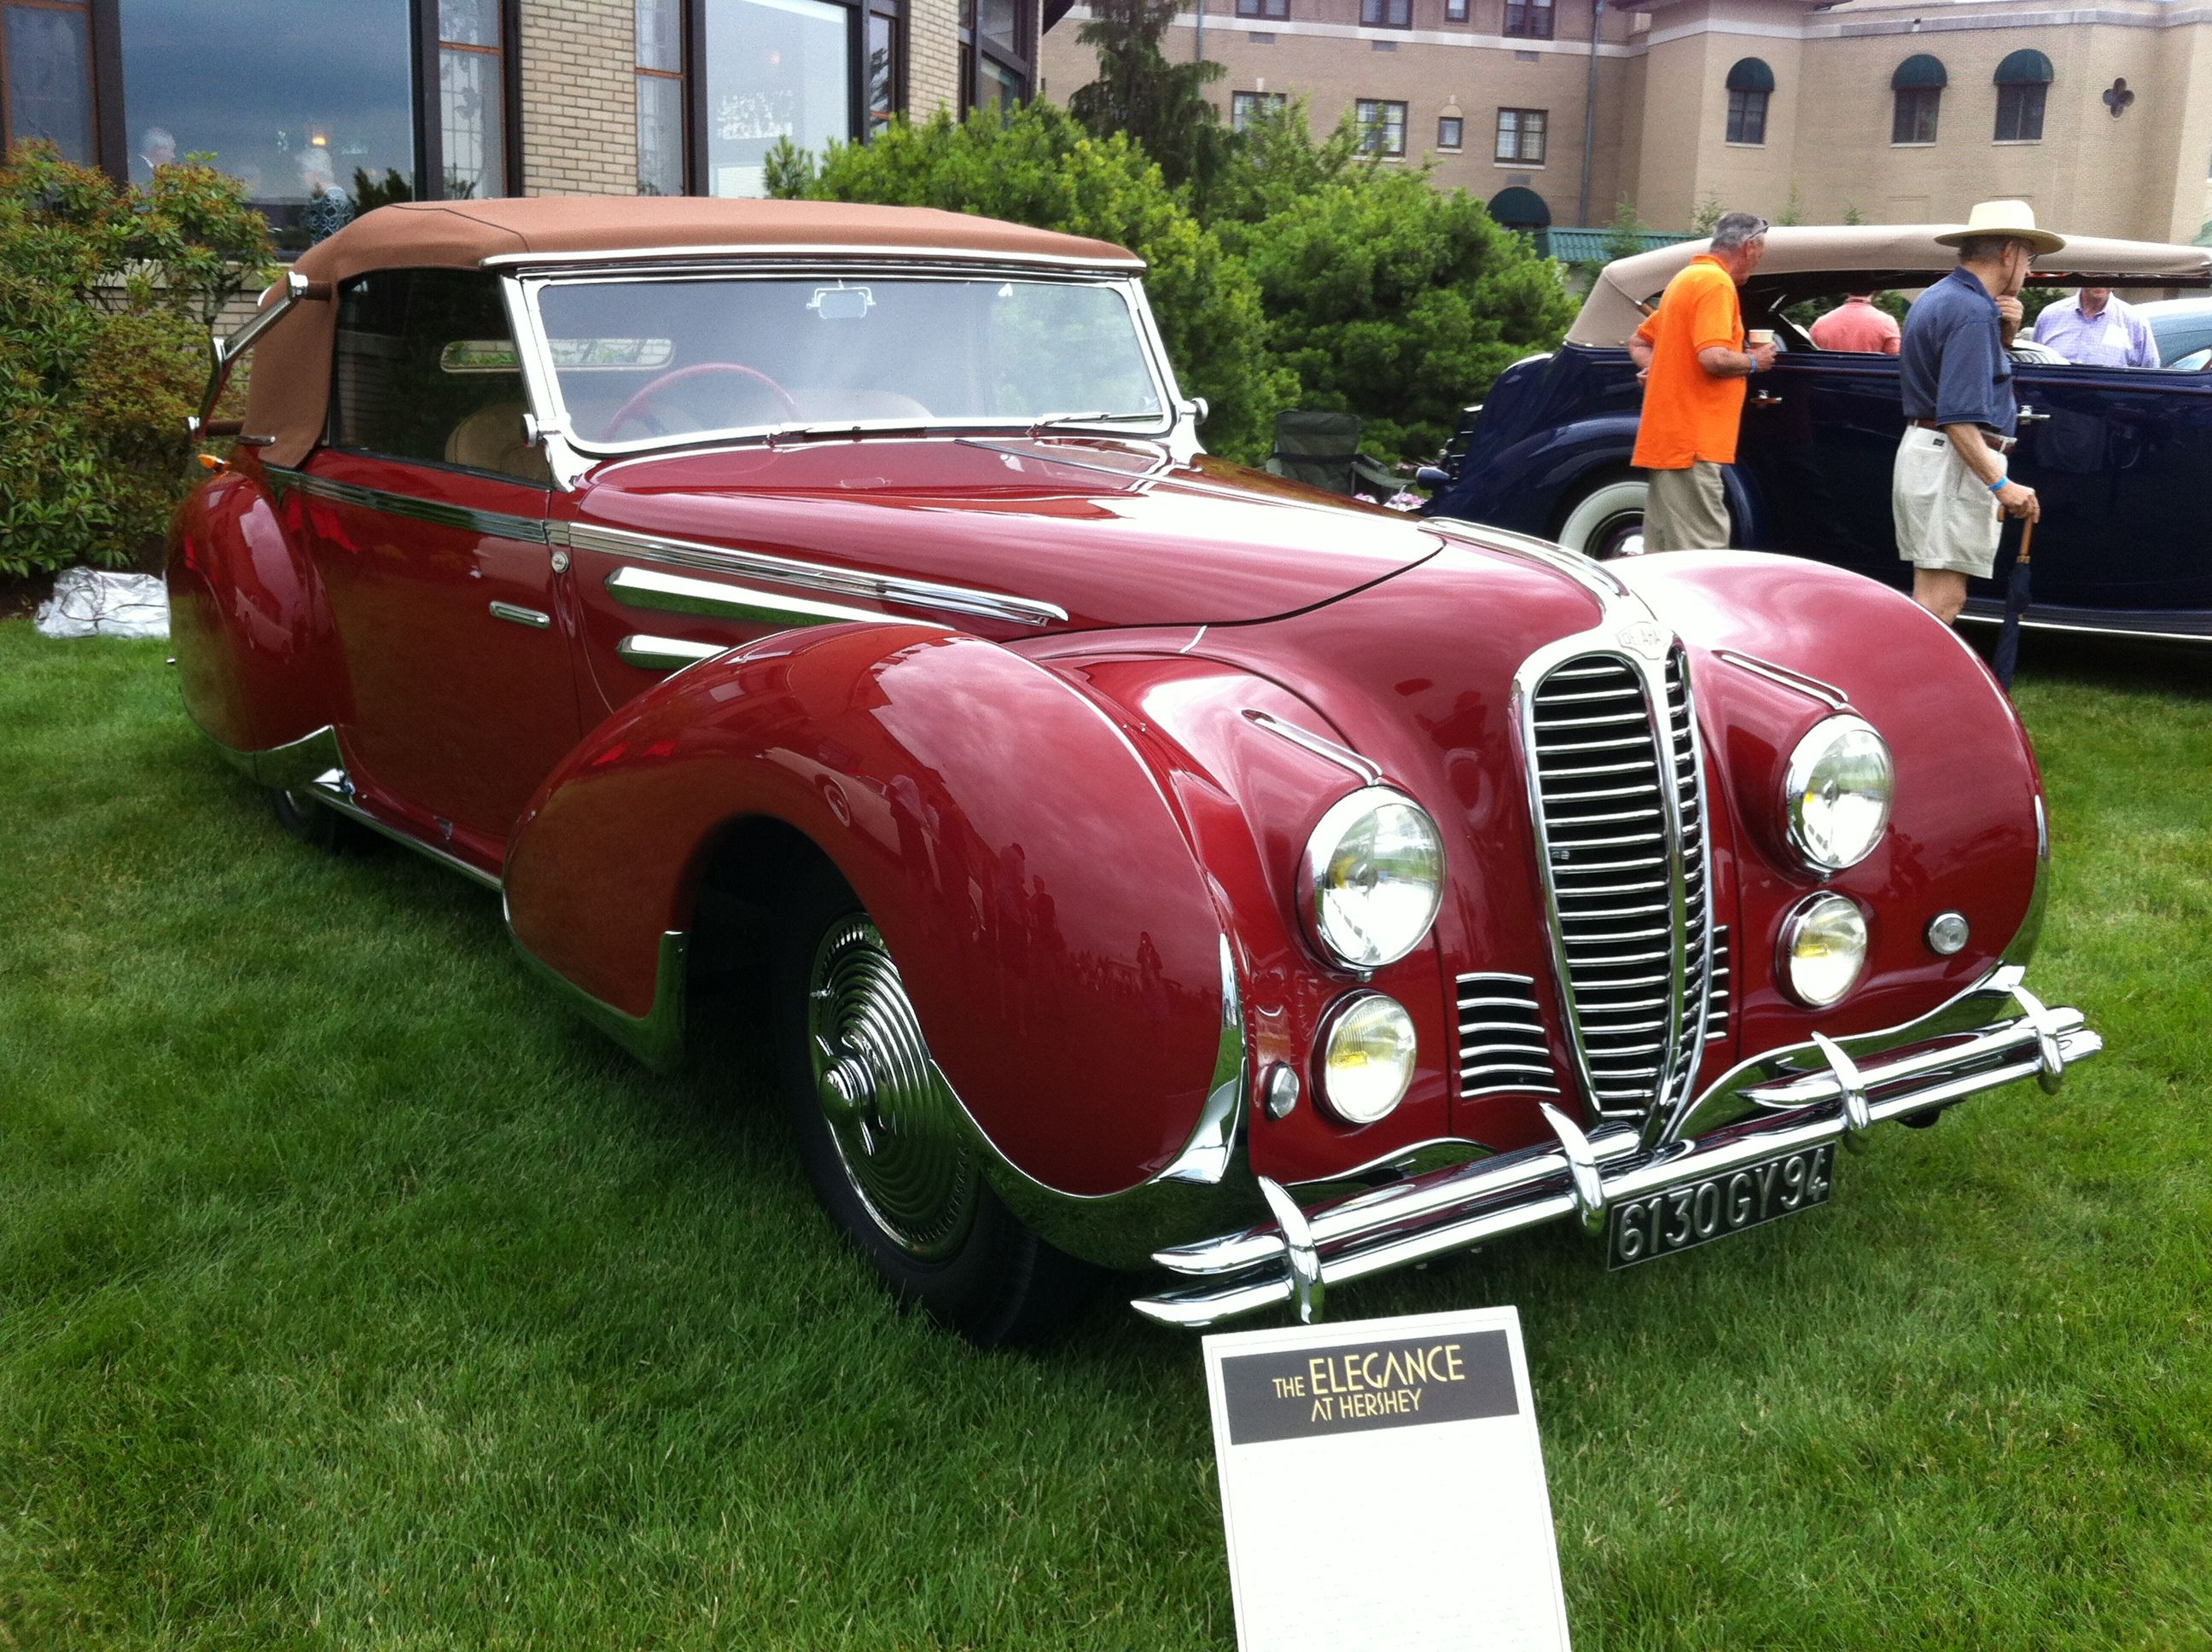 The Elegance Car Show At The Hotel Hershey In Association With The - Aaca museum car show